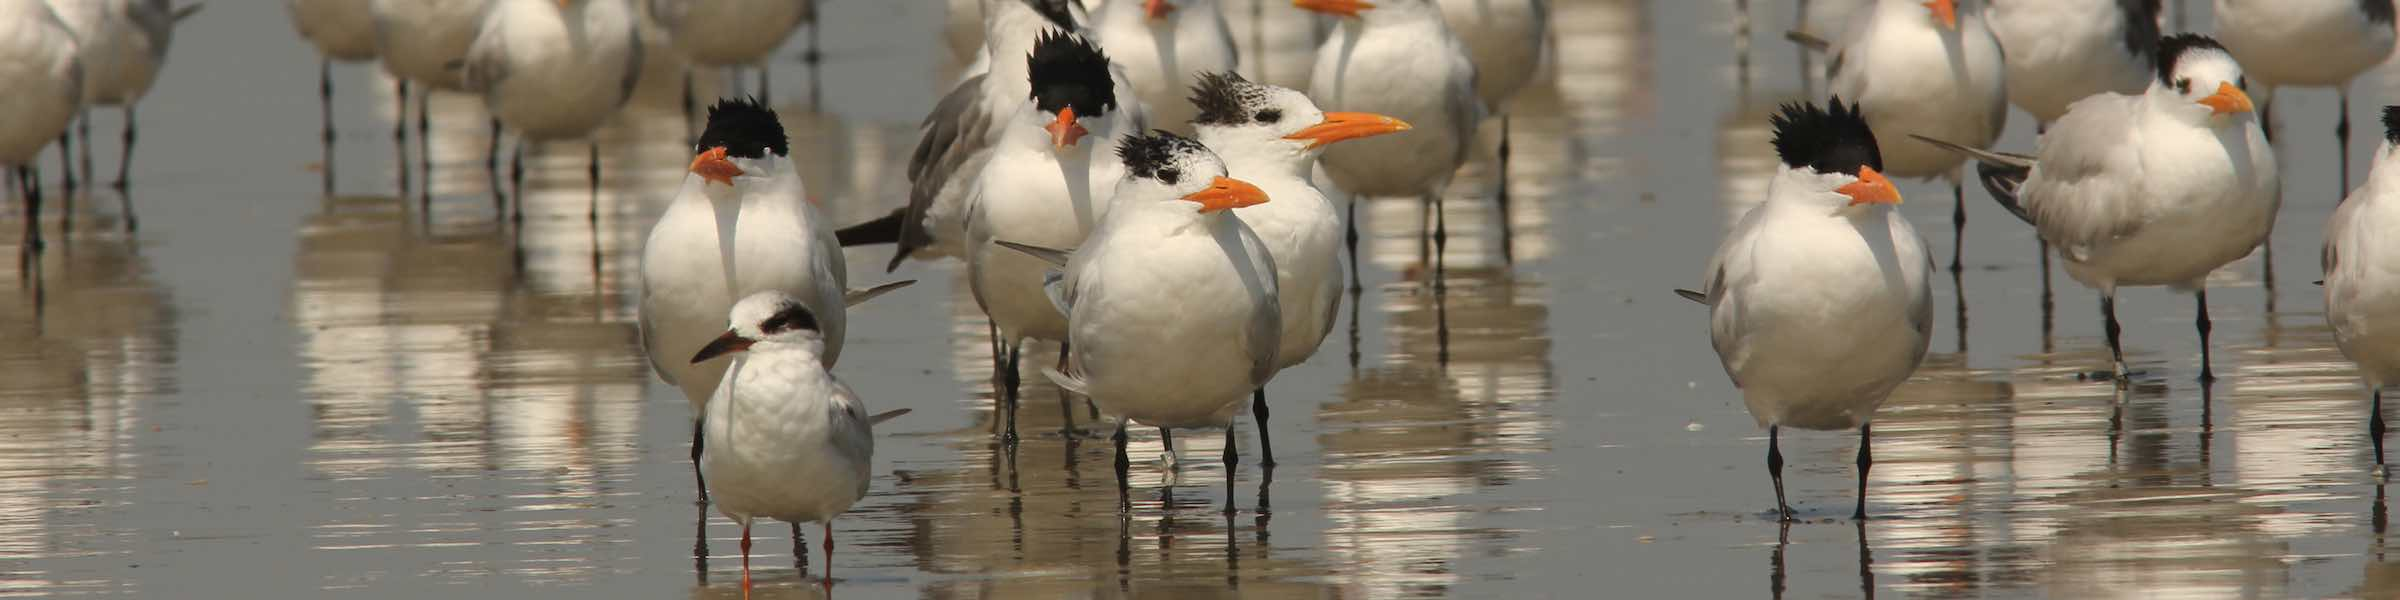 Terns standing in the water on a Georgia beach.